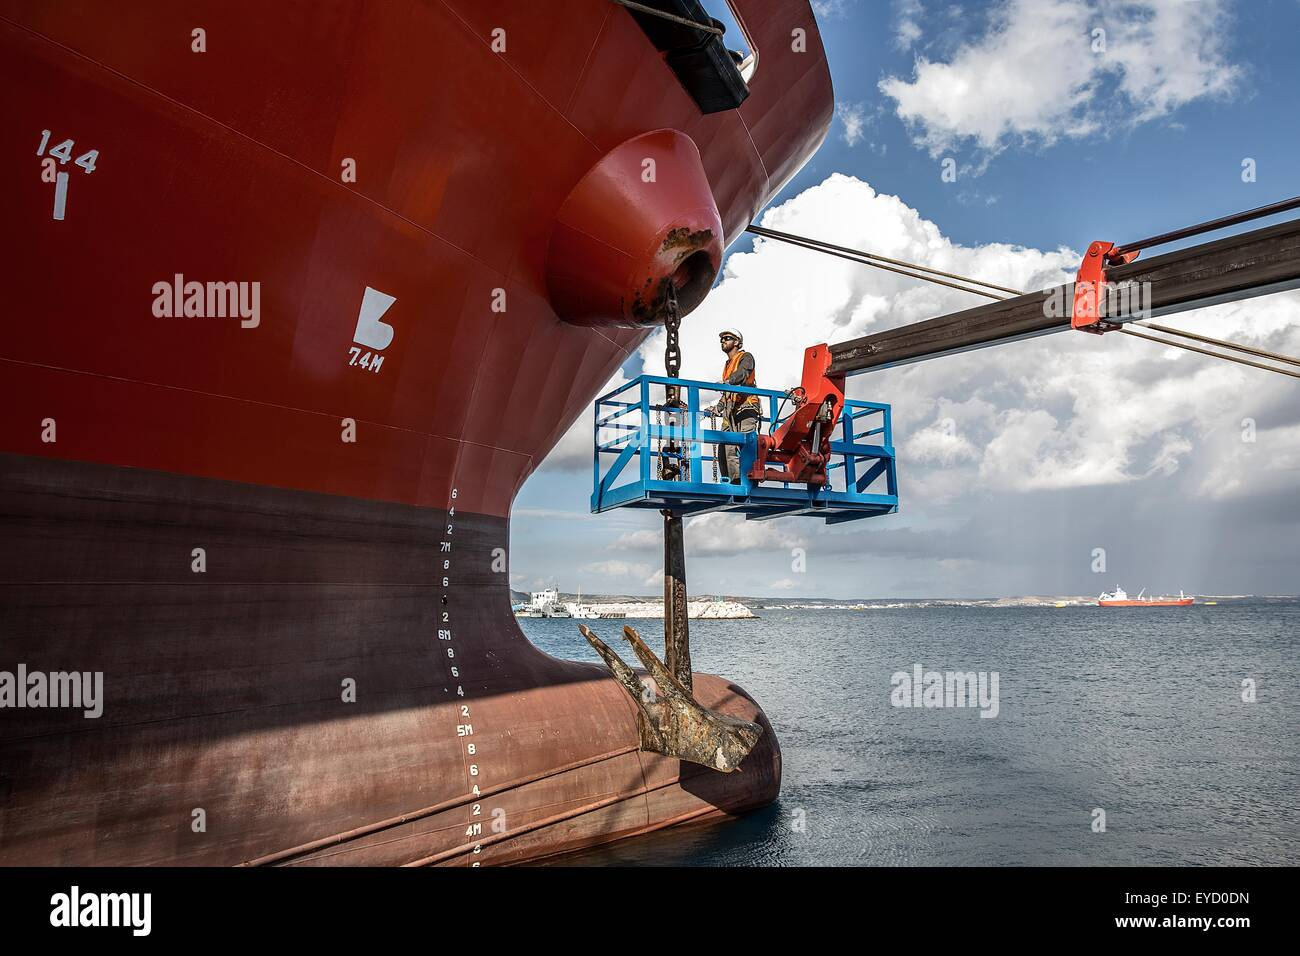 Worker on viewing platform inspecting oil tanker - Stock Image